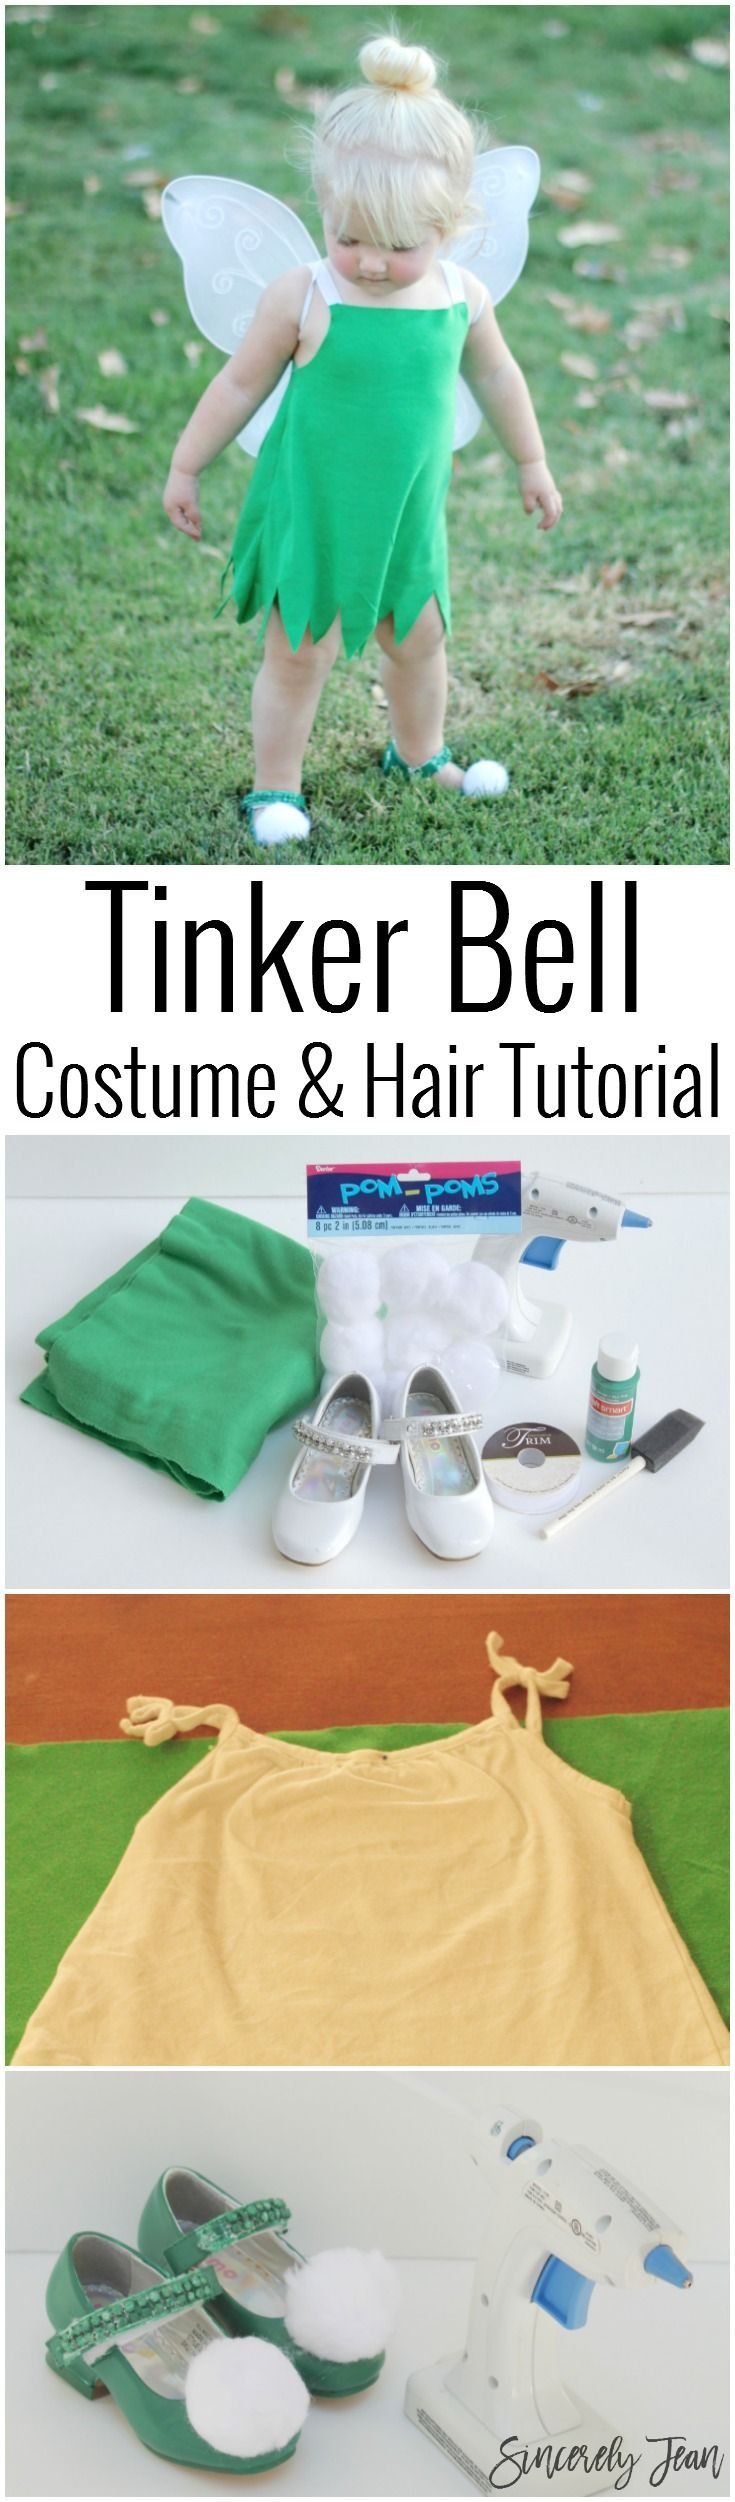 Toddler Halloween Costume - DIY Toddler Tinker Bell Costume and Hair - Simple and cute tutorial on how to make a toddler Tinker Bell costume and tips for doing the hair! | http://www.sincerelyjean.com